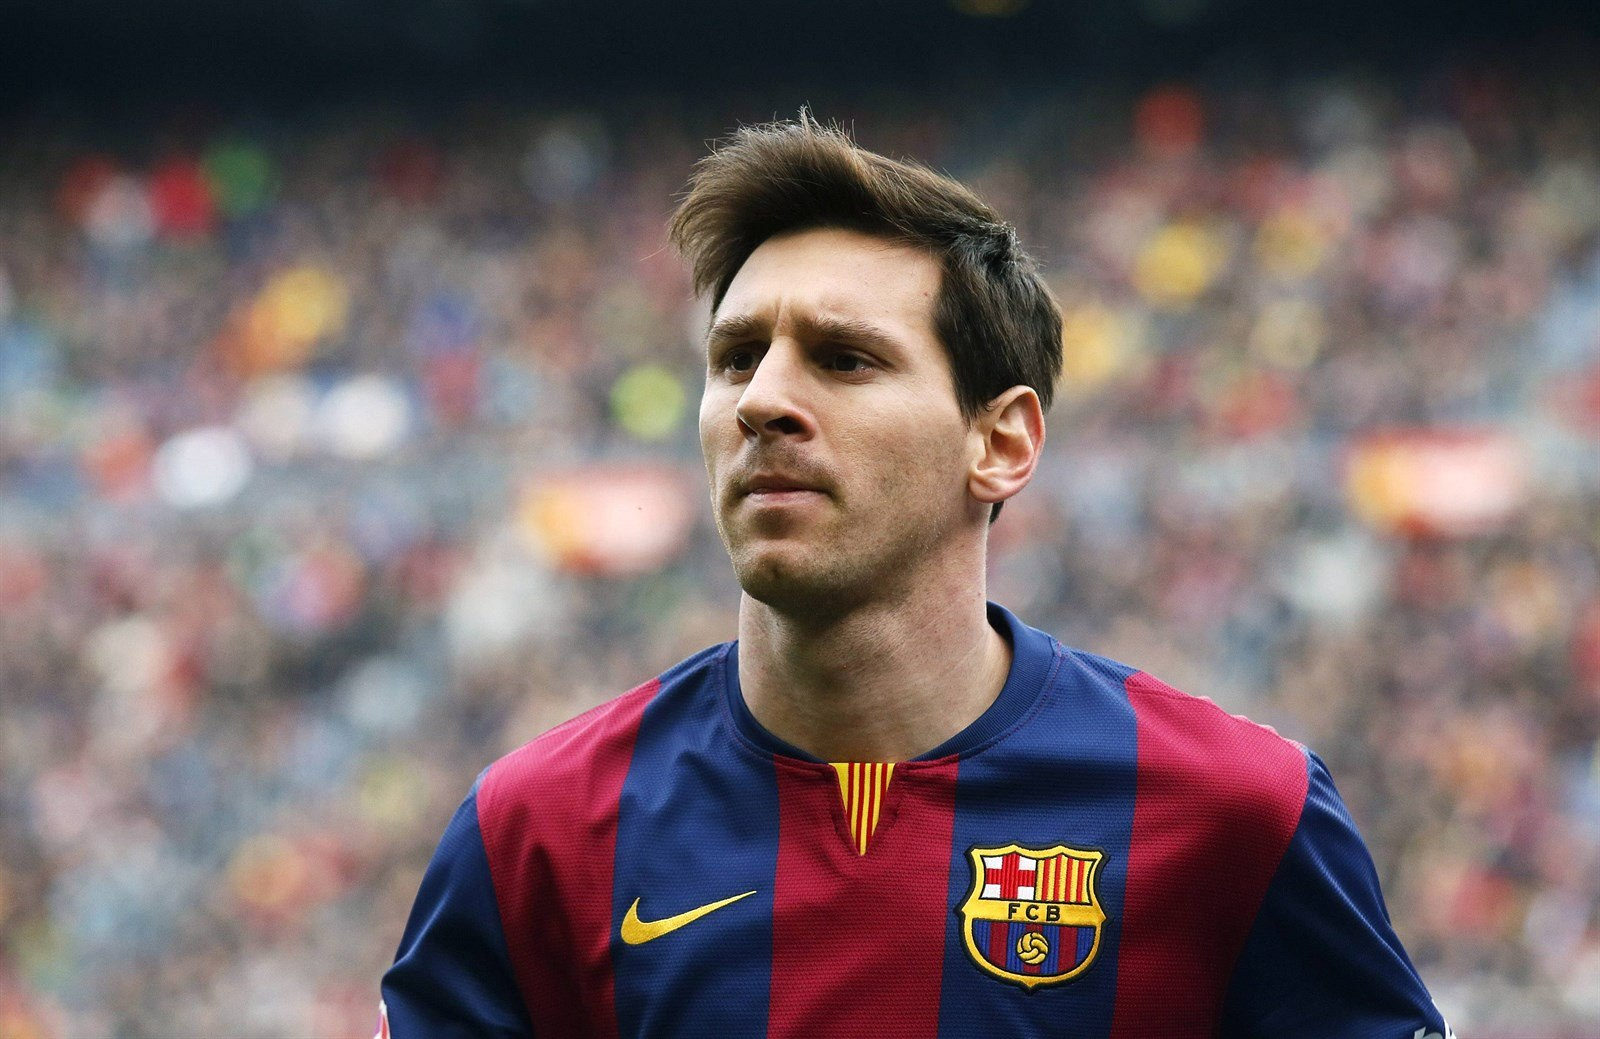 Live Wallpaper For Iphone 3gs Download Messi Hd Wallpaper Free Download Gallery